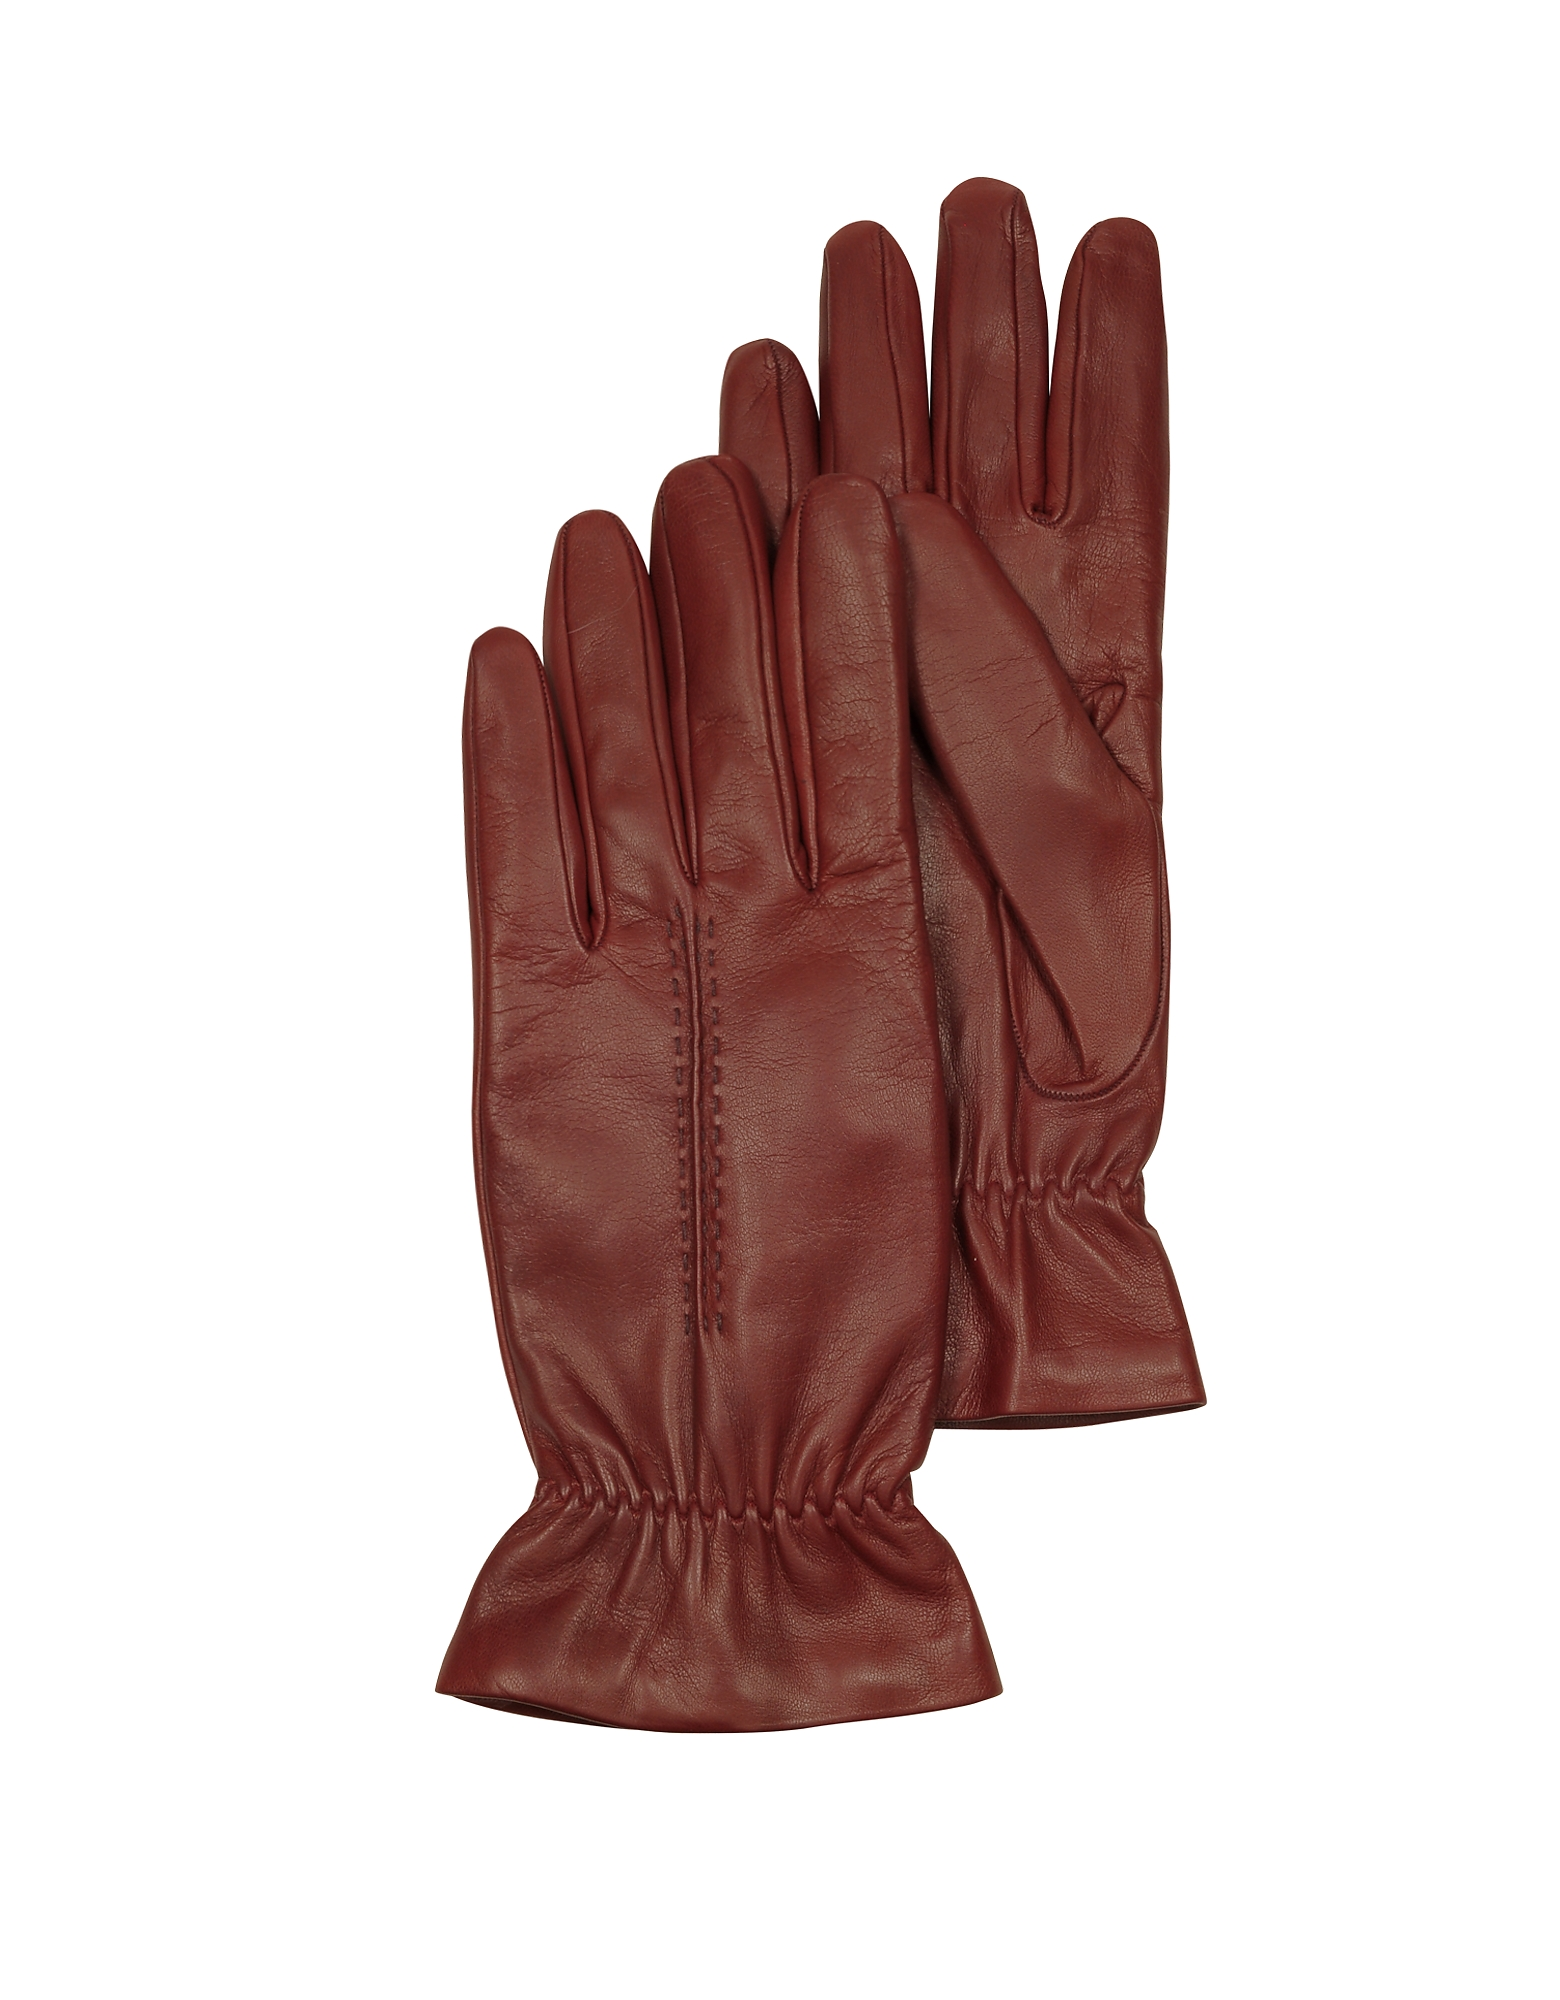 Forzieri Burgundy Leather Women's Gloves w/Wool Lining